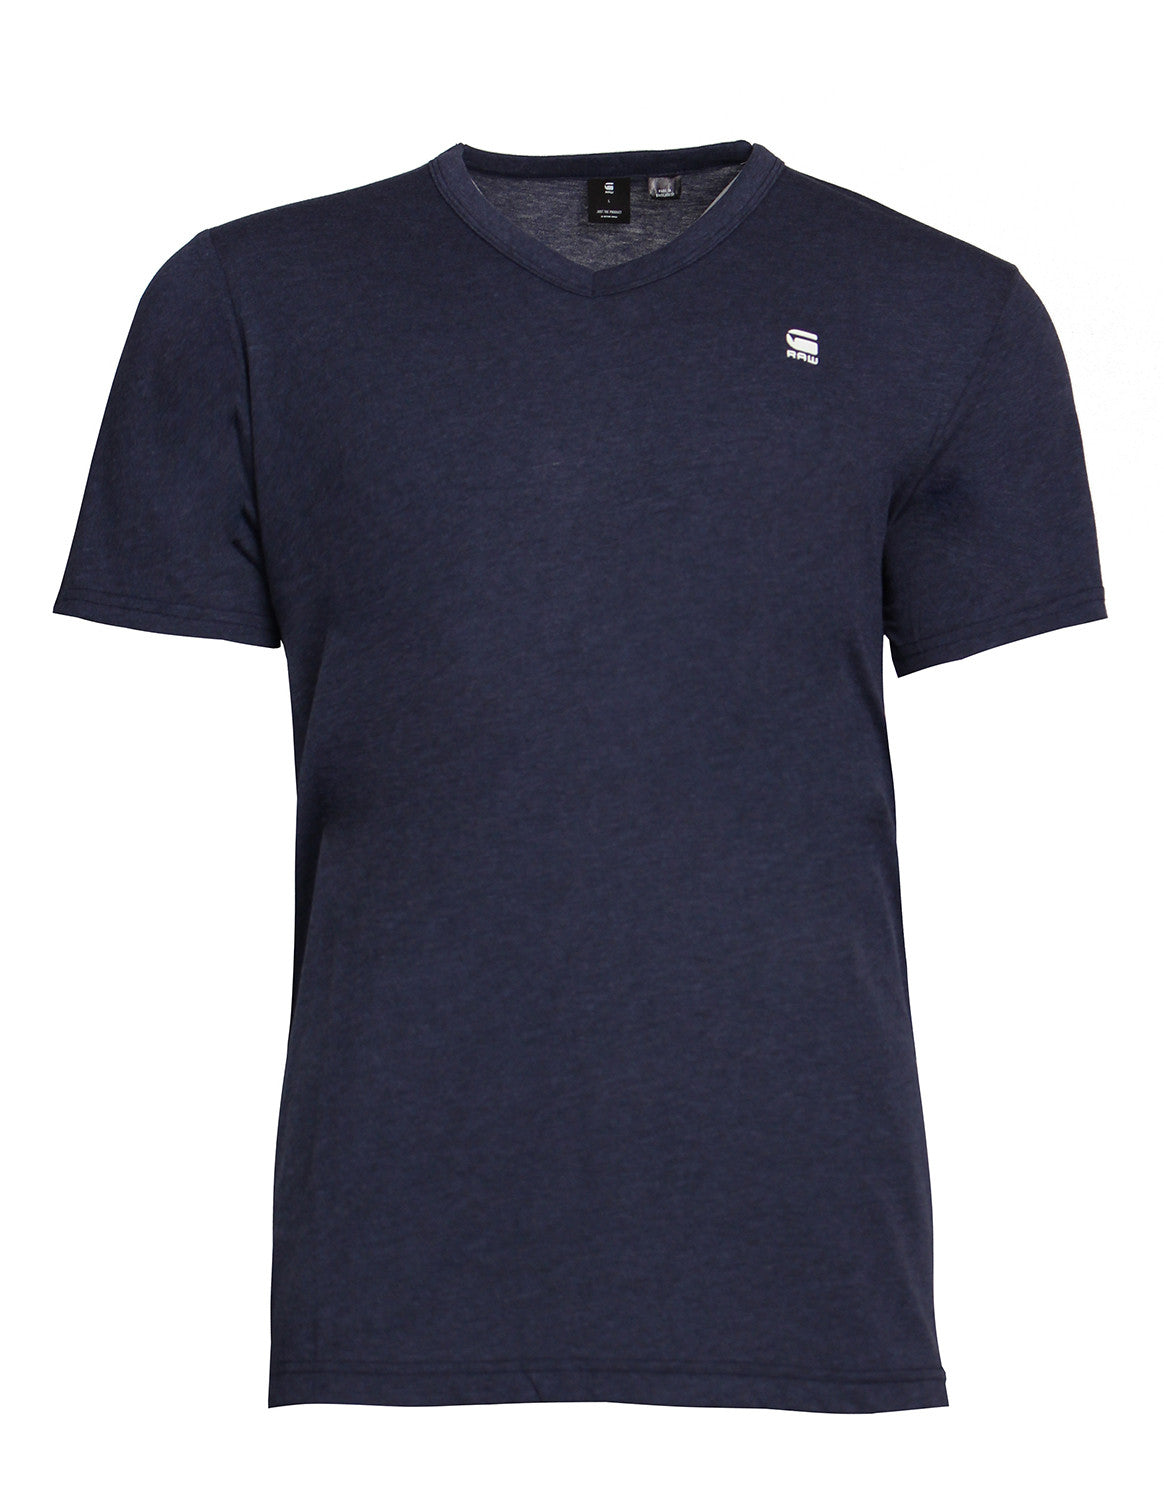 G-Star Raw T-Shirt (NAVY)